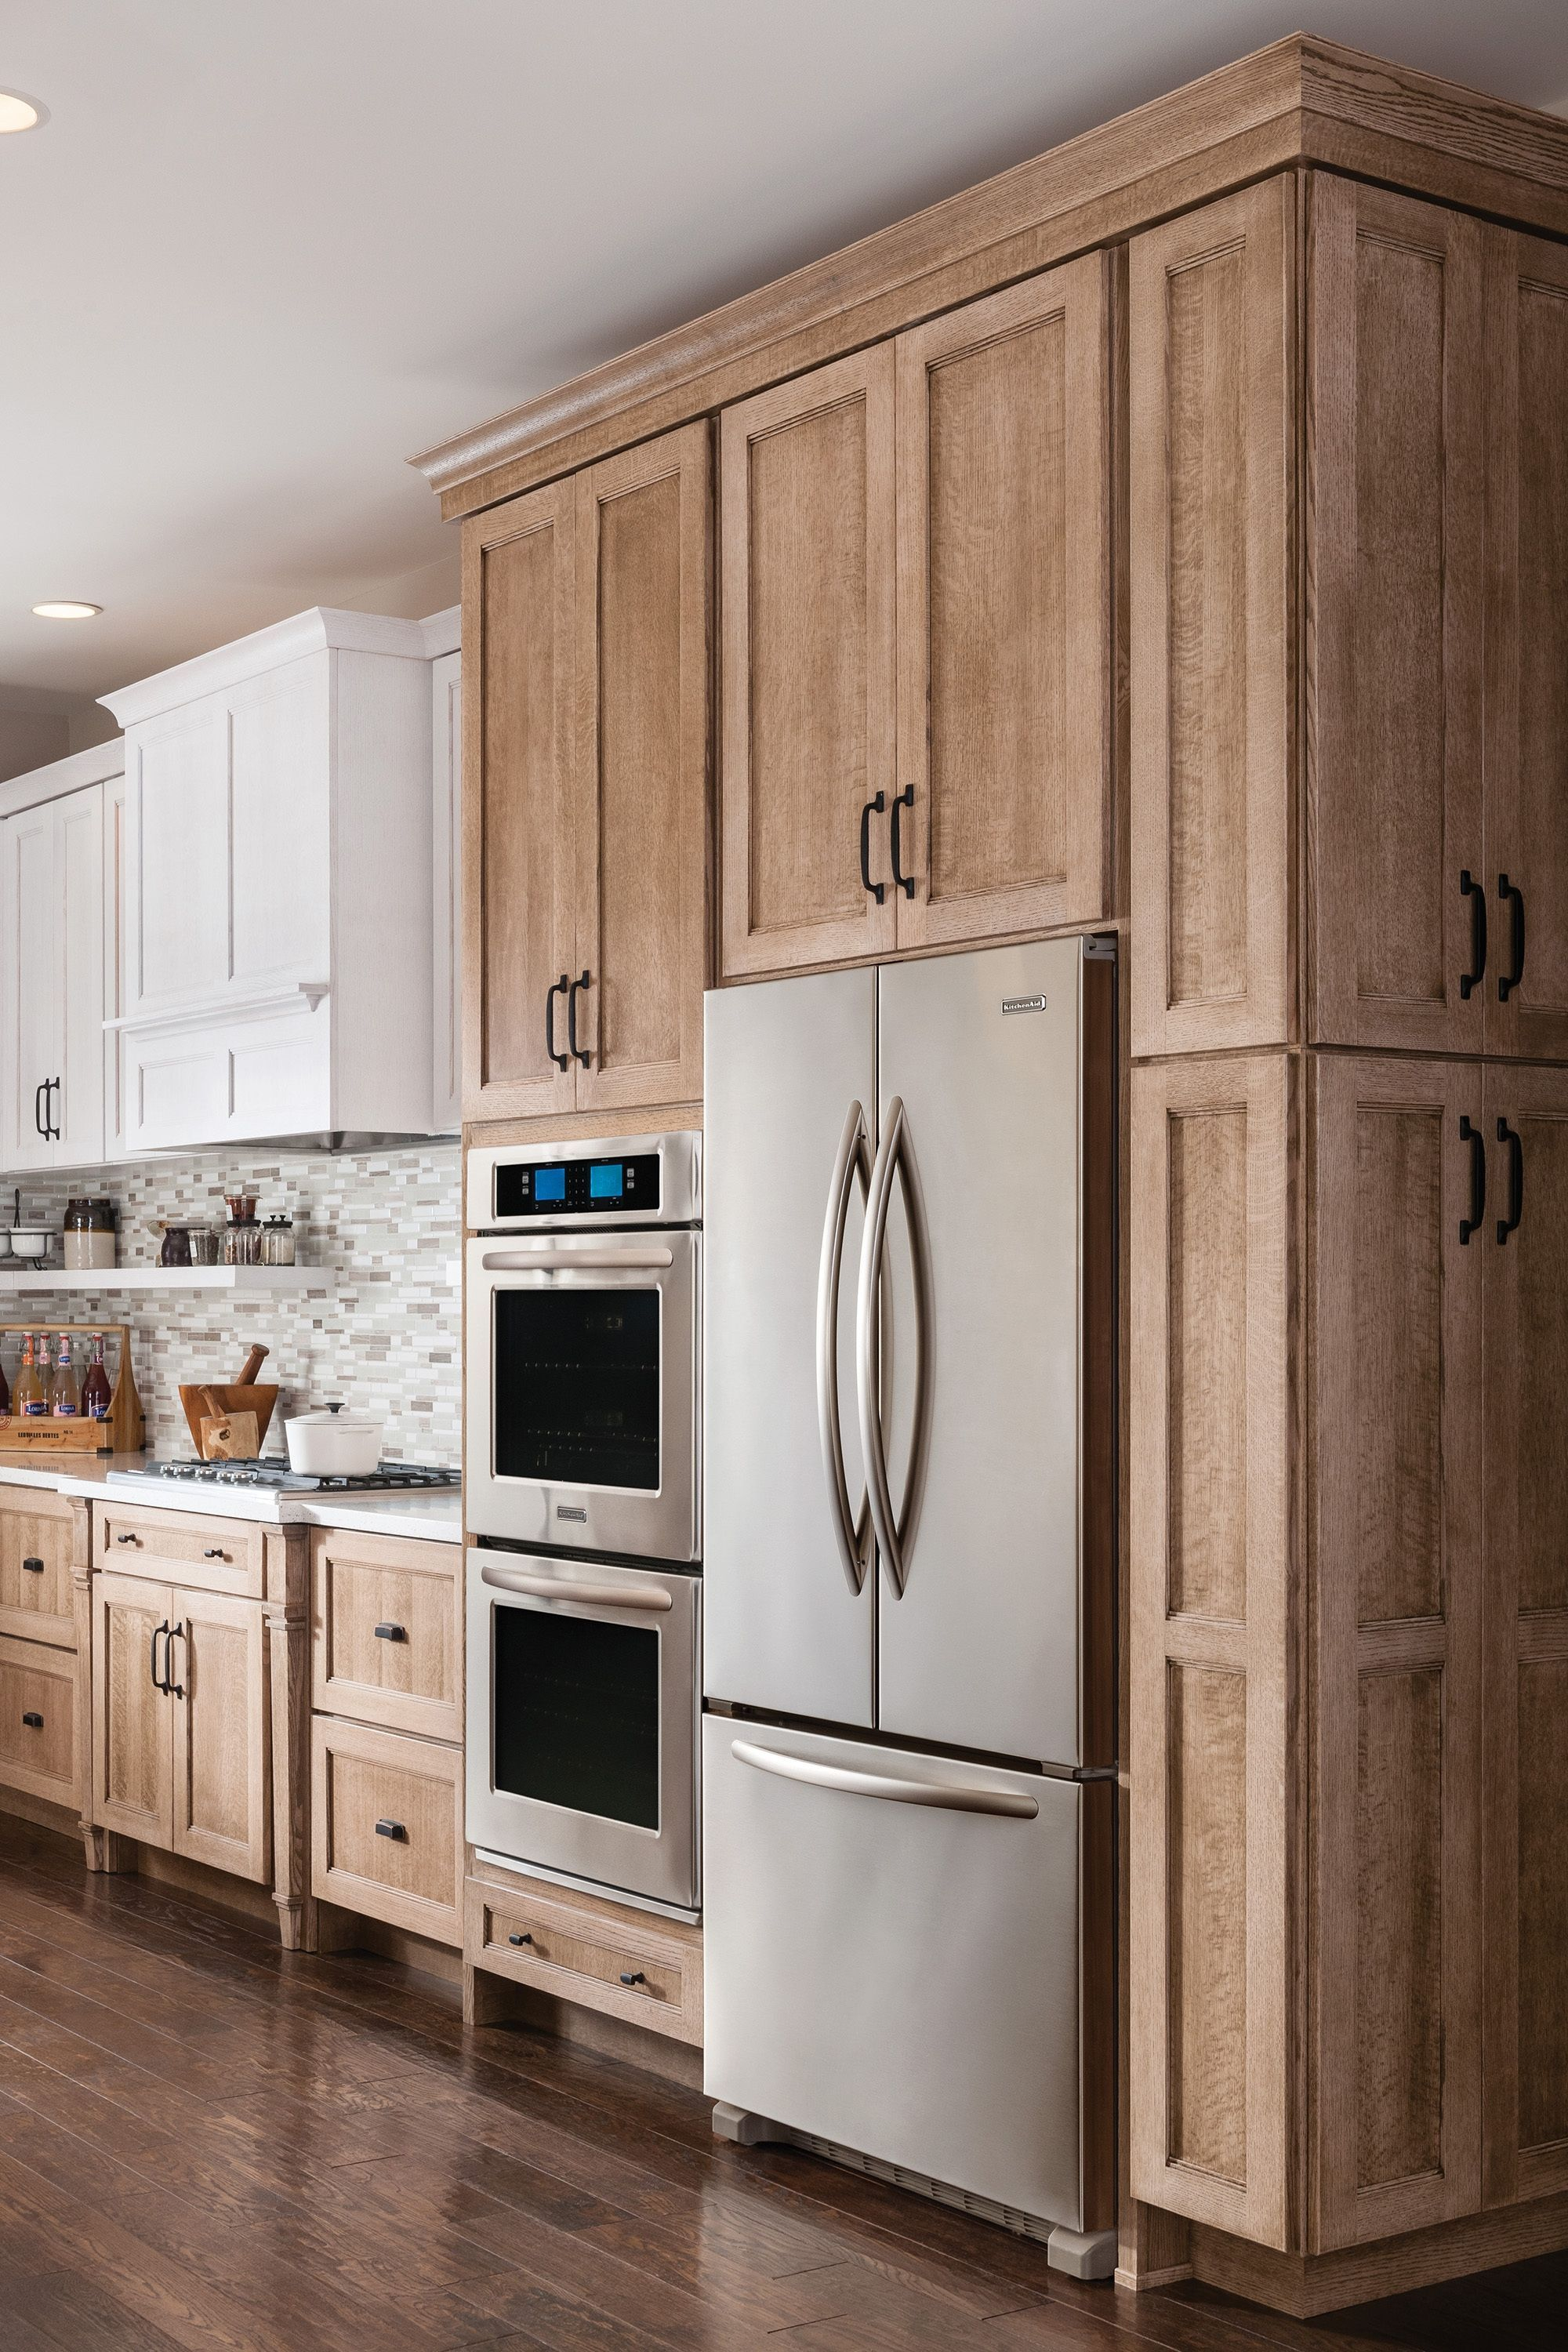 Cuccino Brown Kitchen Cabinets Then You Definitely Need To Choose The Black If Are Getting Excited